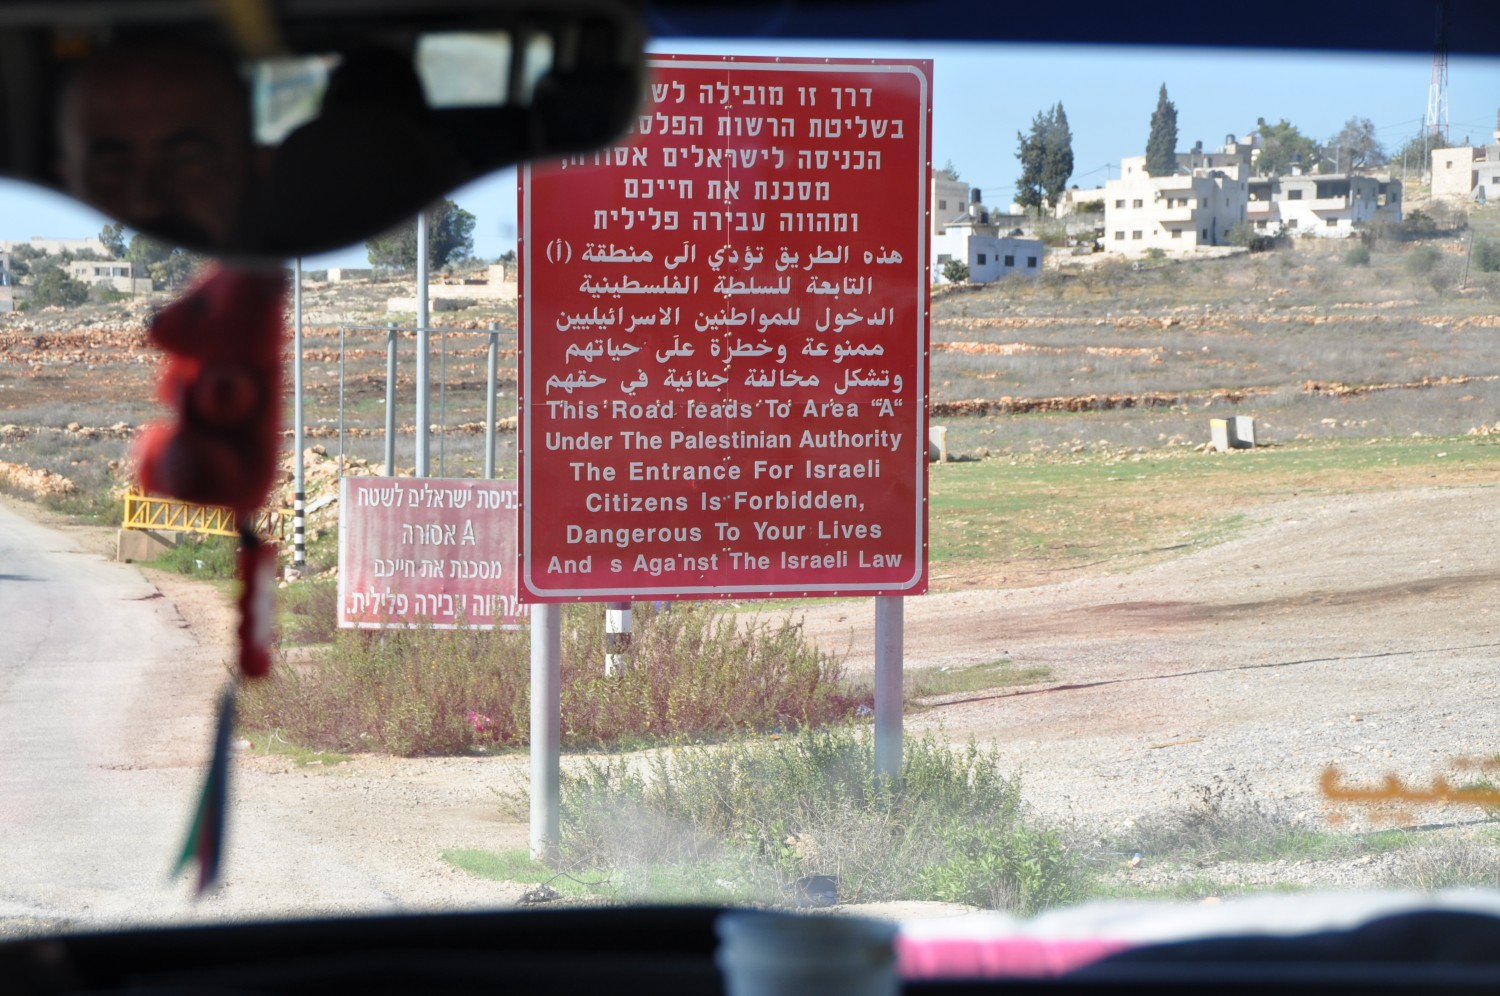 Signpost entering Palestine